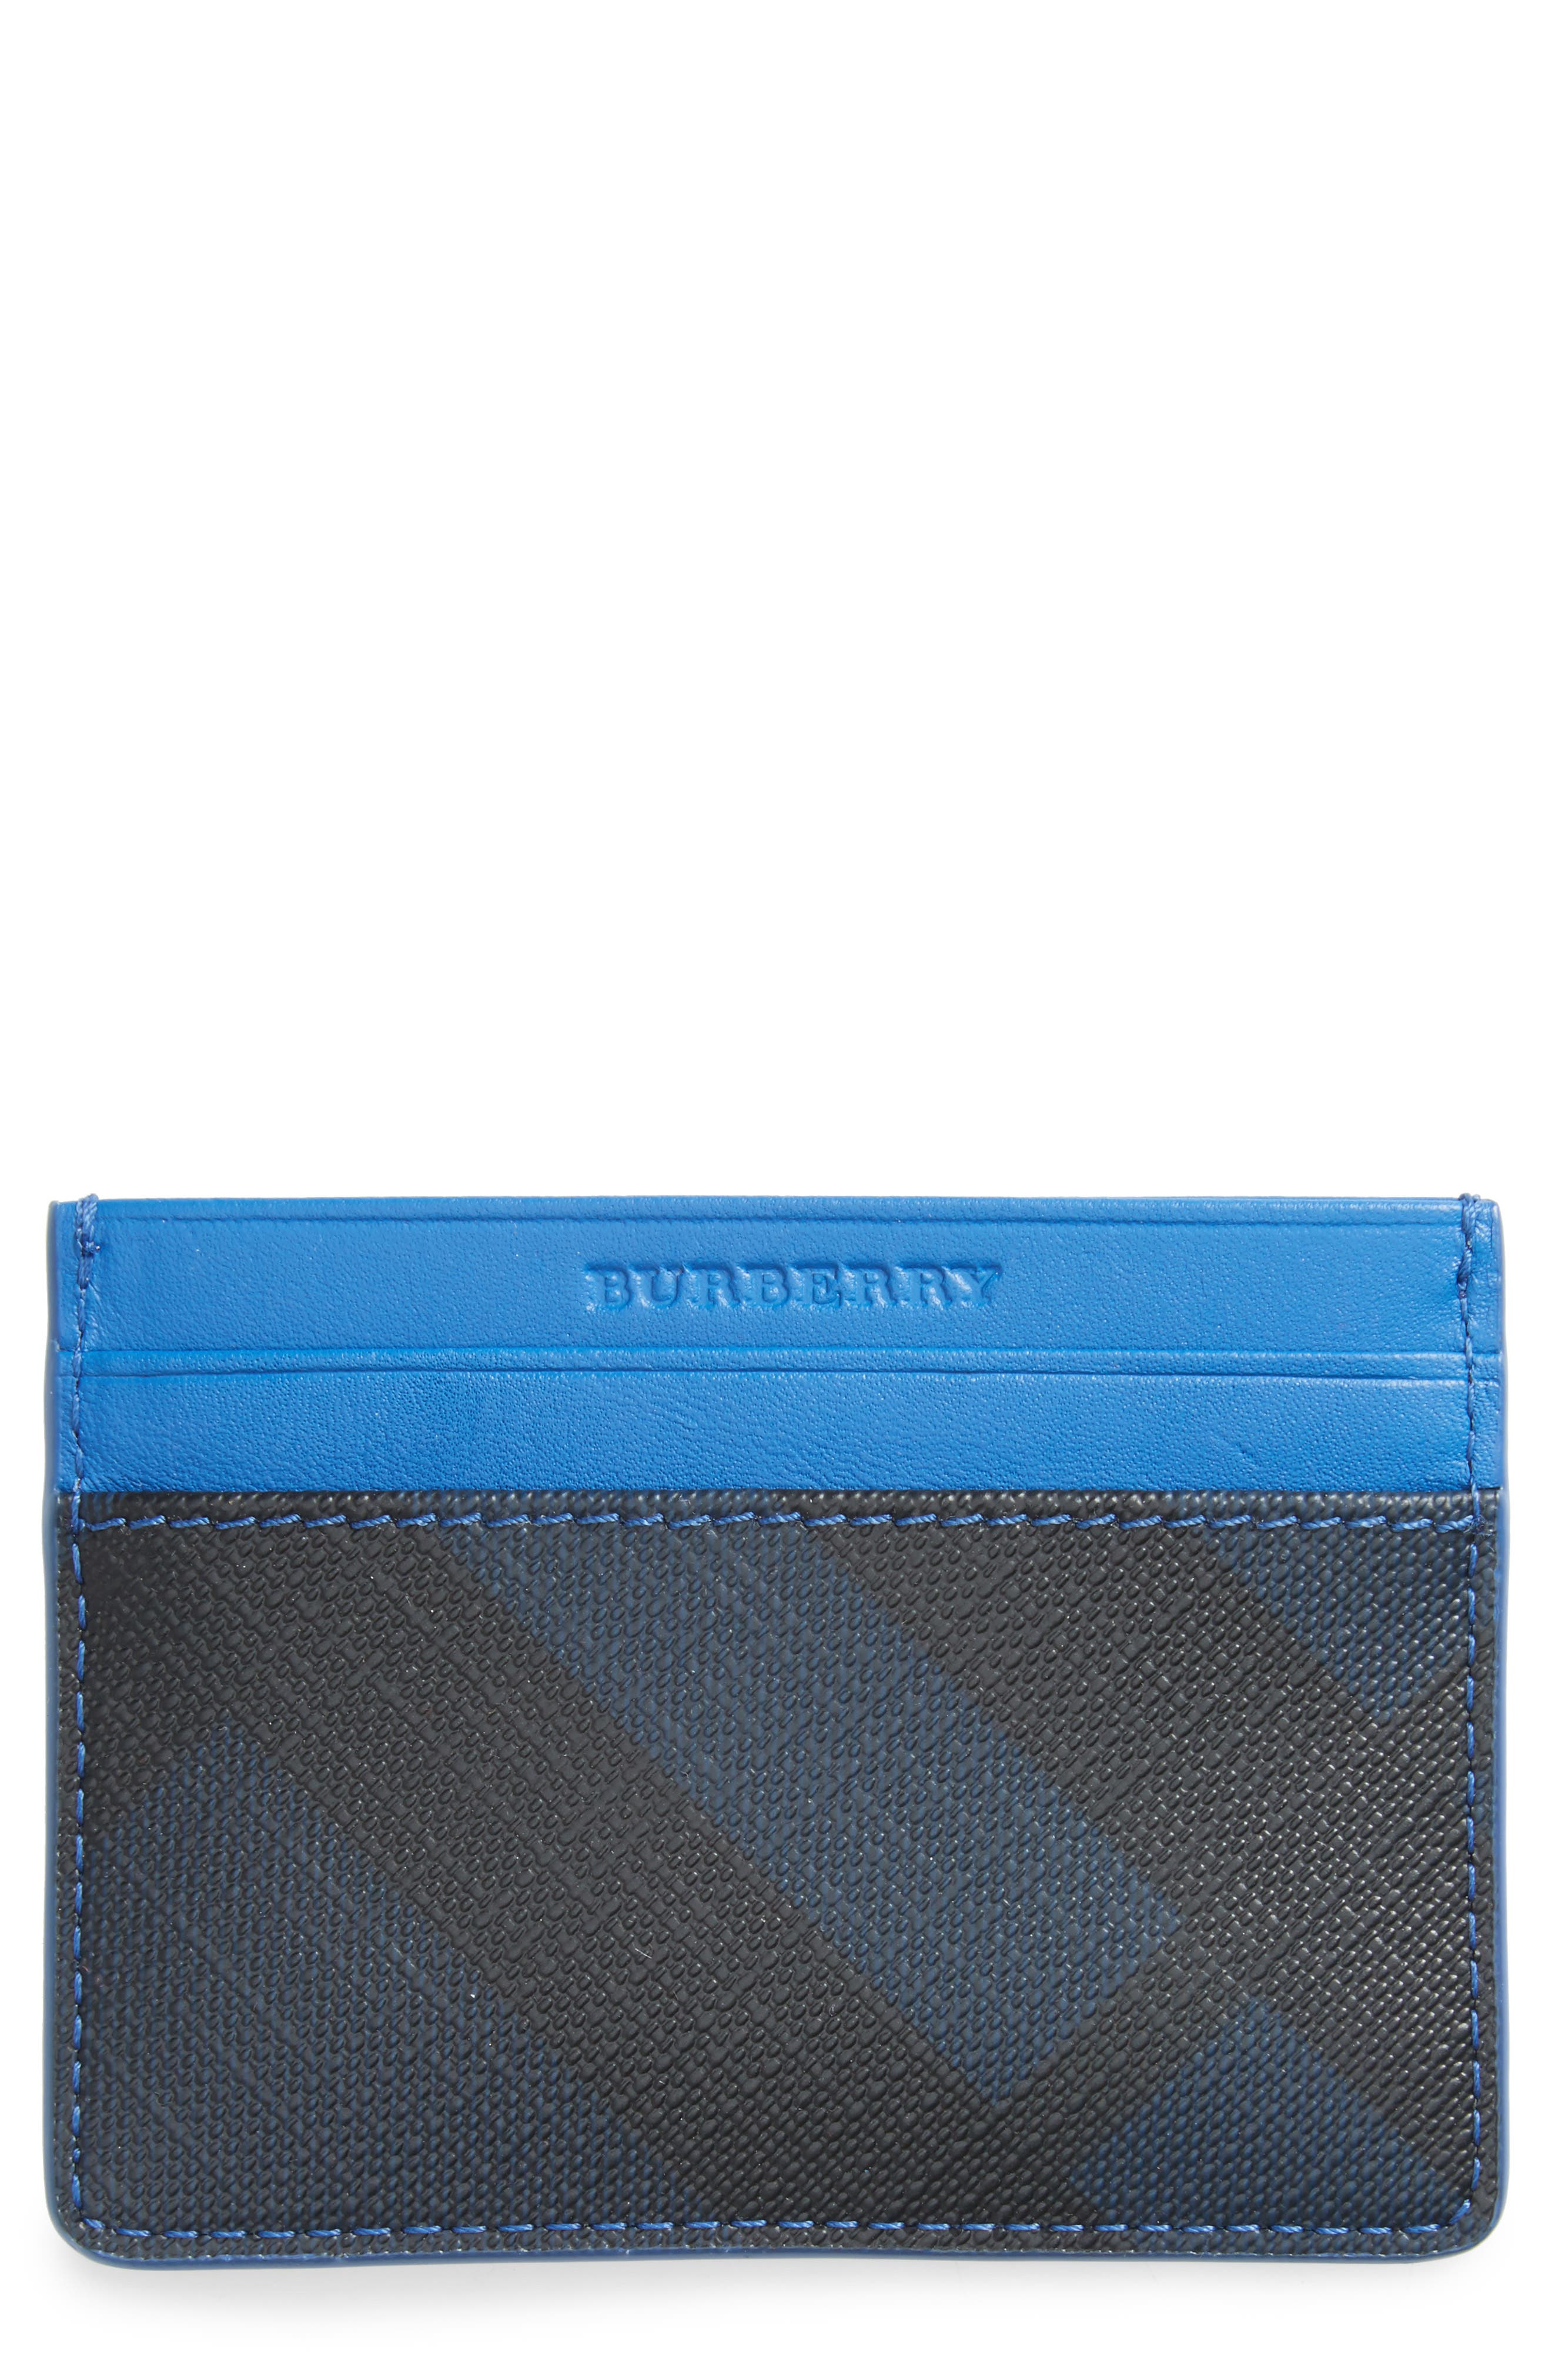 Check Faux Leather Card Case,                         Main,                         color, Navy/ Blue